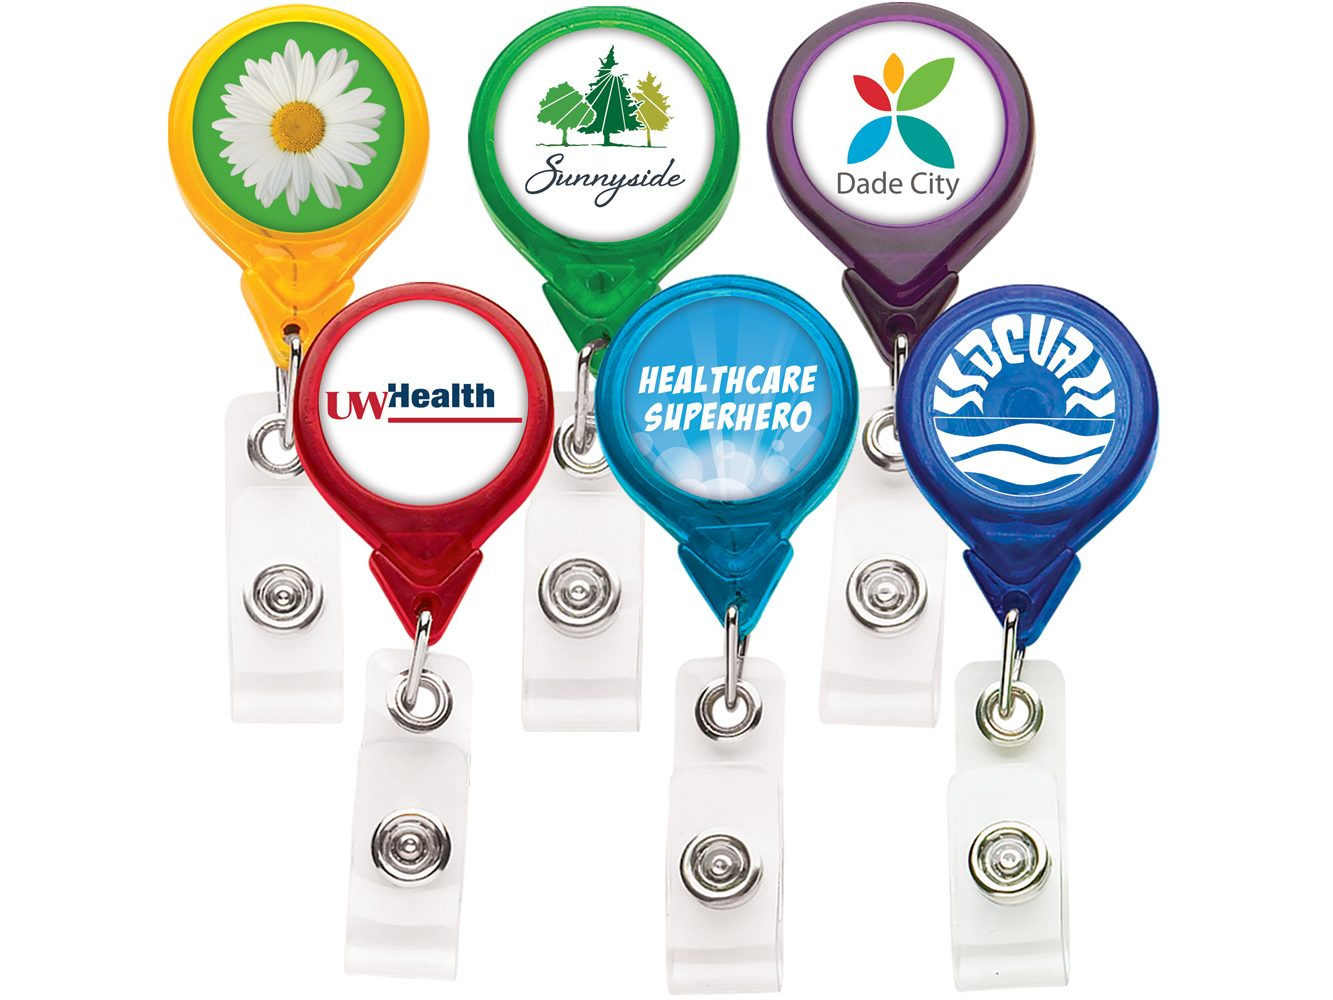 TBH3 Translucent Round Badge Reel - Best